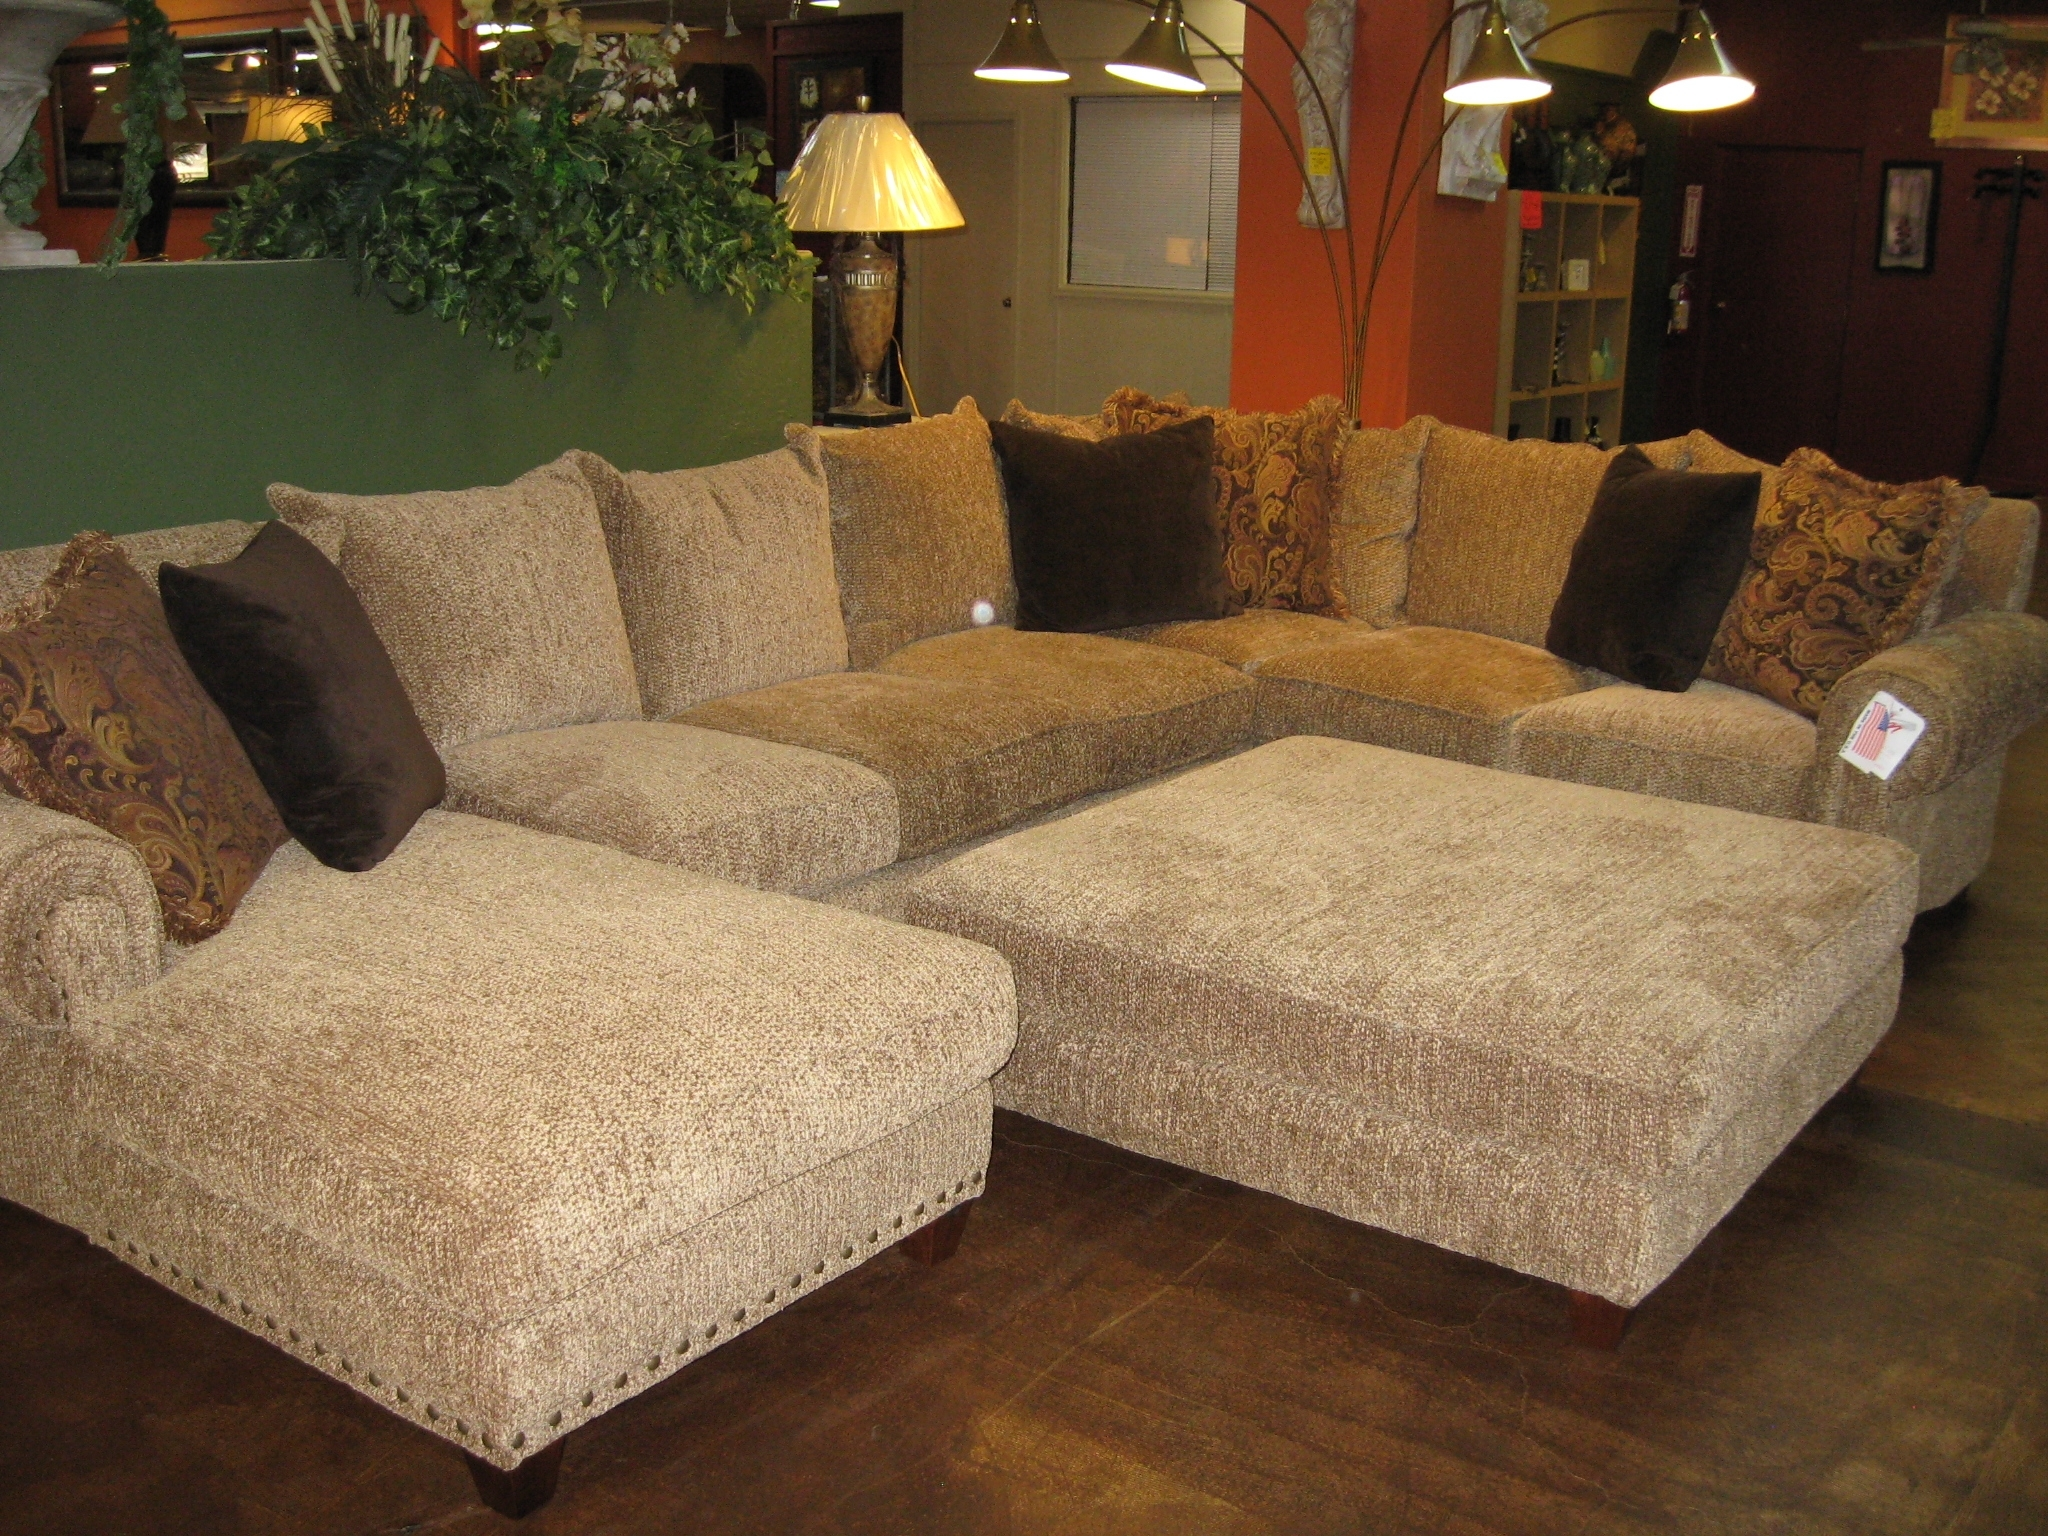 Sectional Sofa With Chaise And Ottoman – Hotelsbacau Regarding Sectionals With Chaise And Ottoman (View 5 of 10)